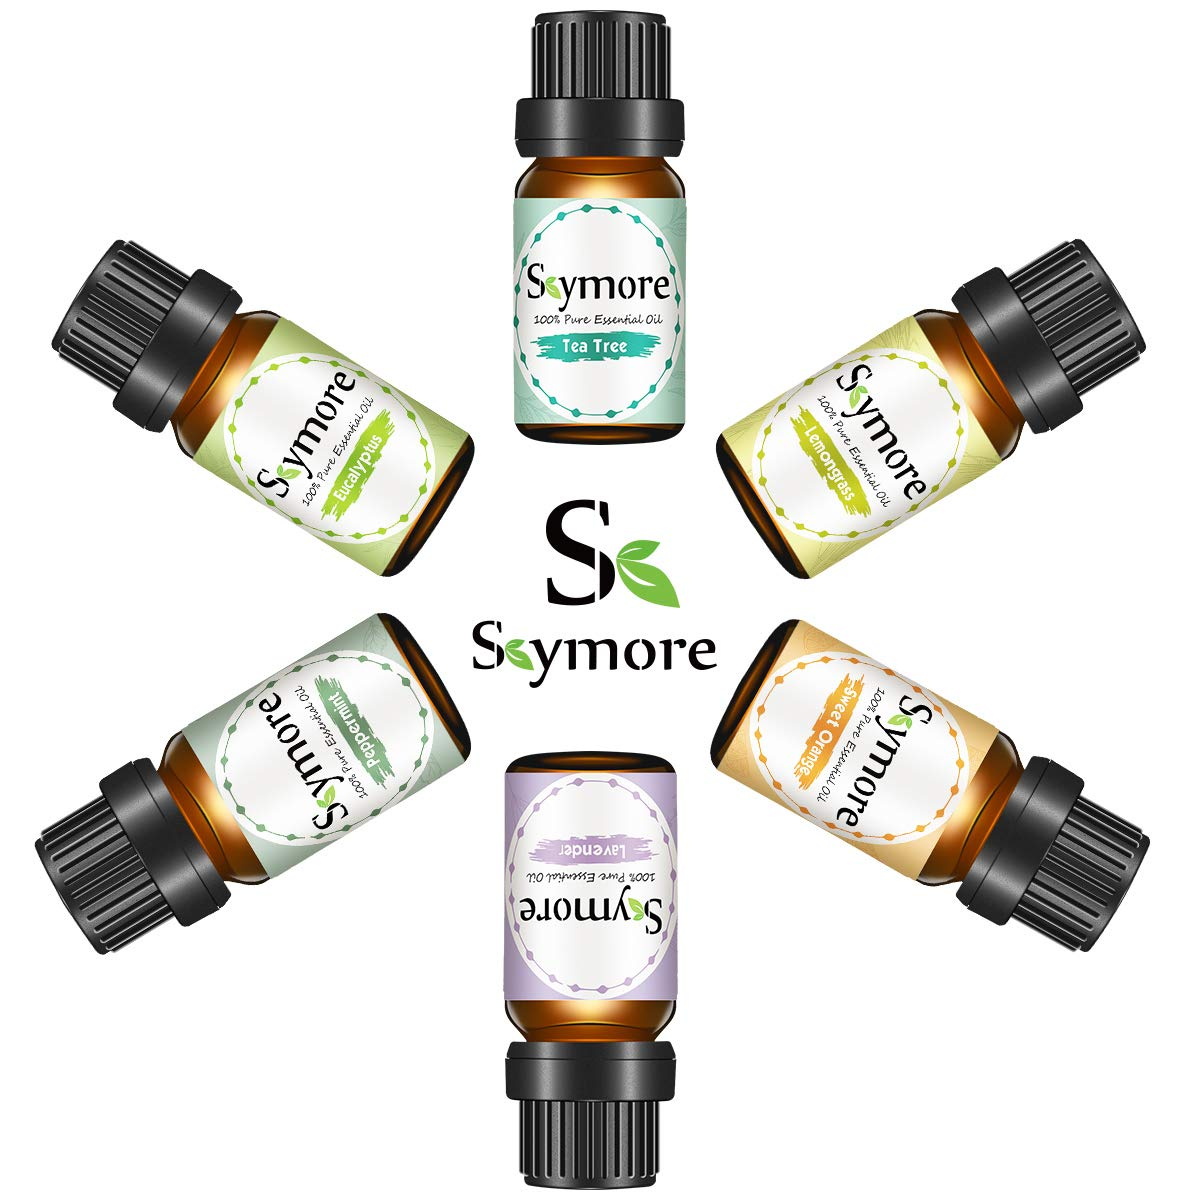 Skymore Top 6 Essential Oil Blend Gift Set best acne systems for adults